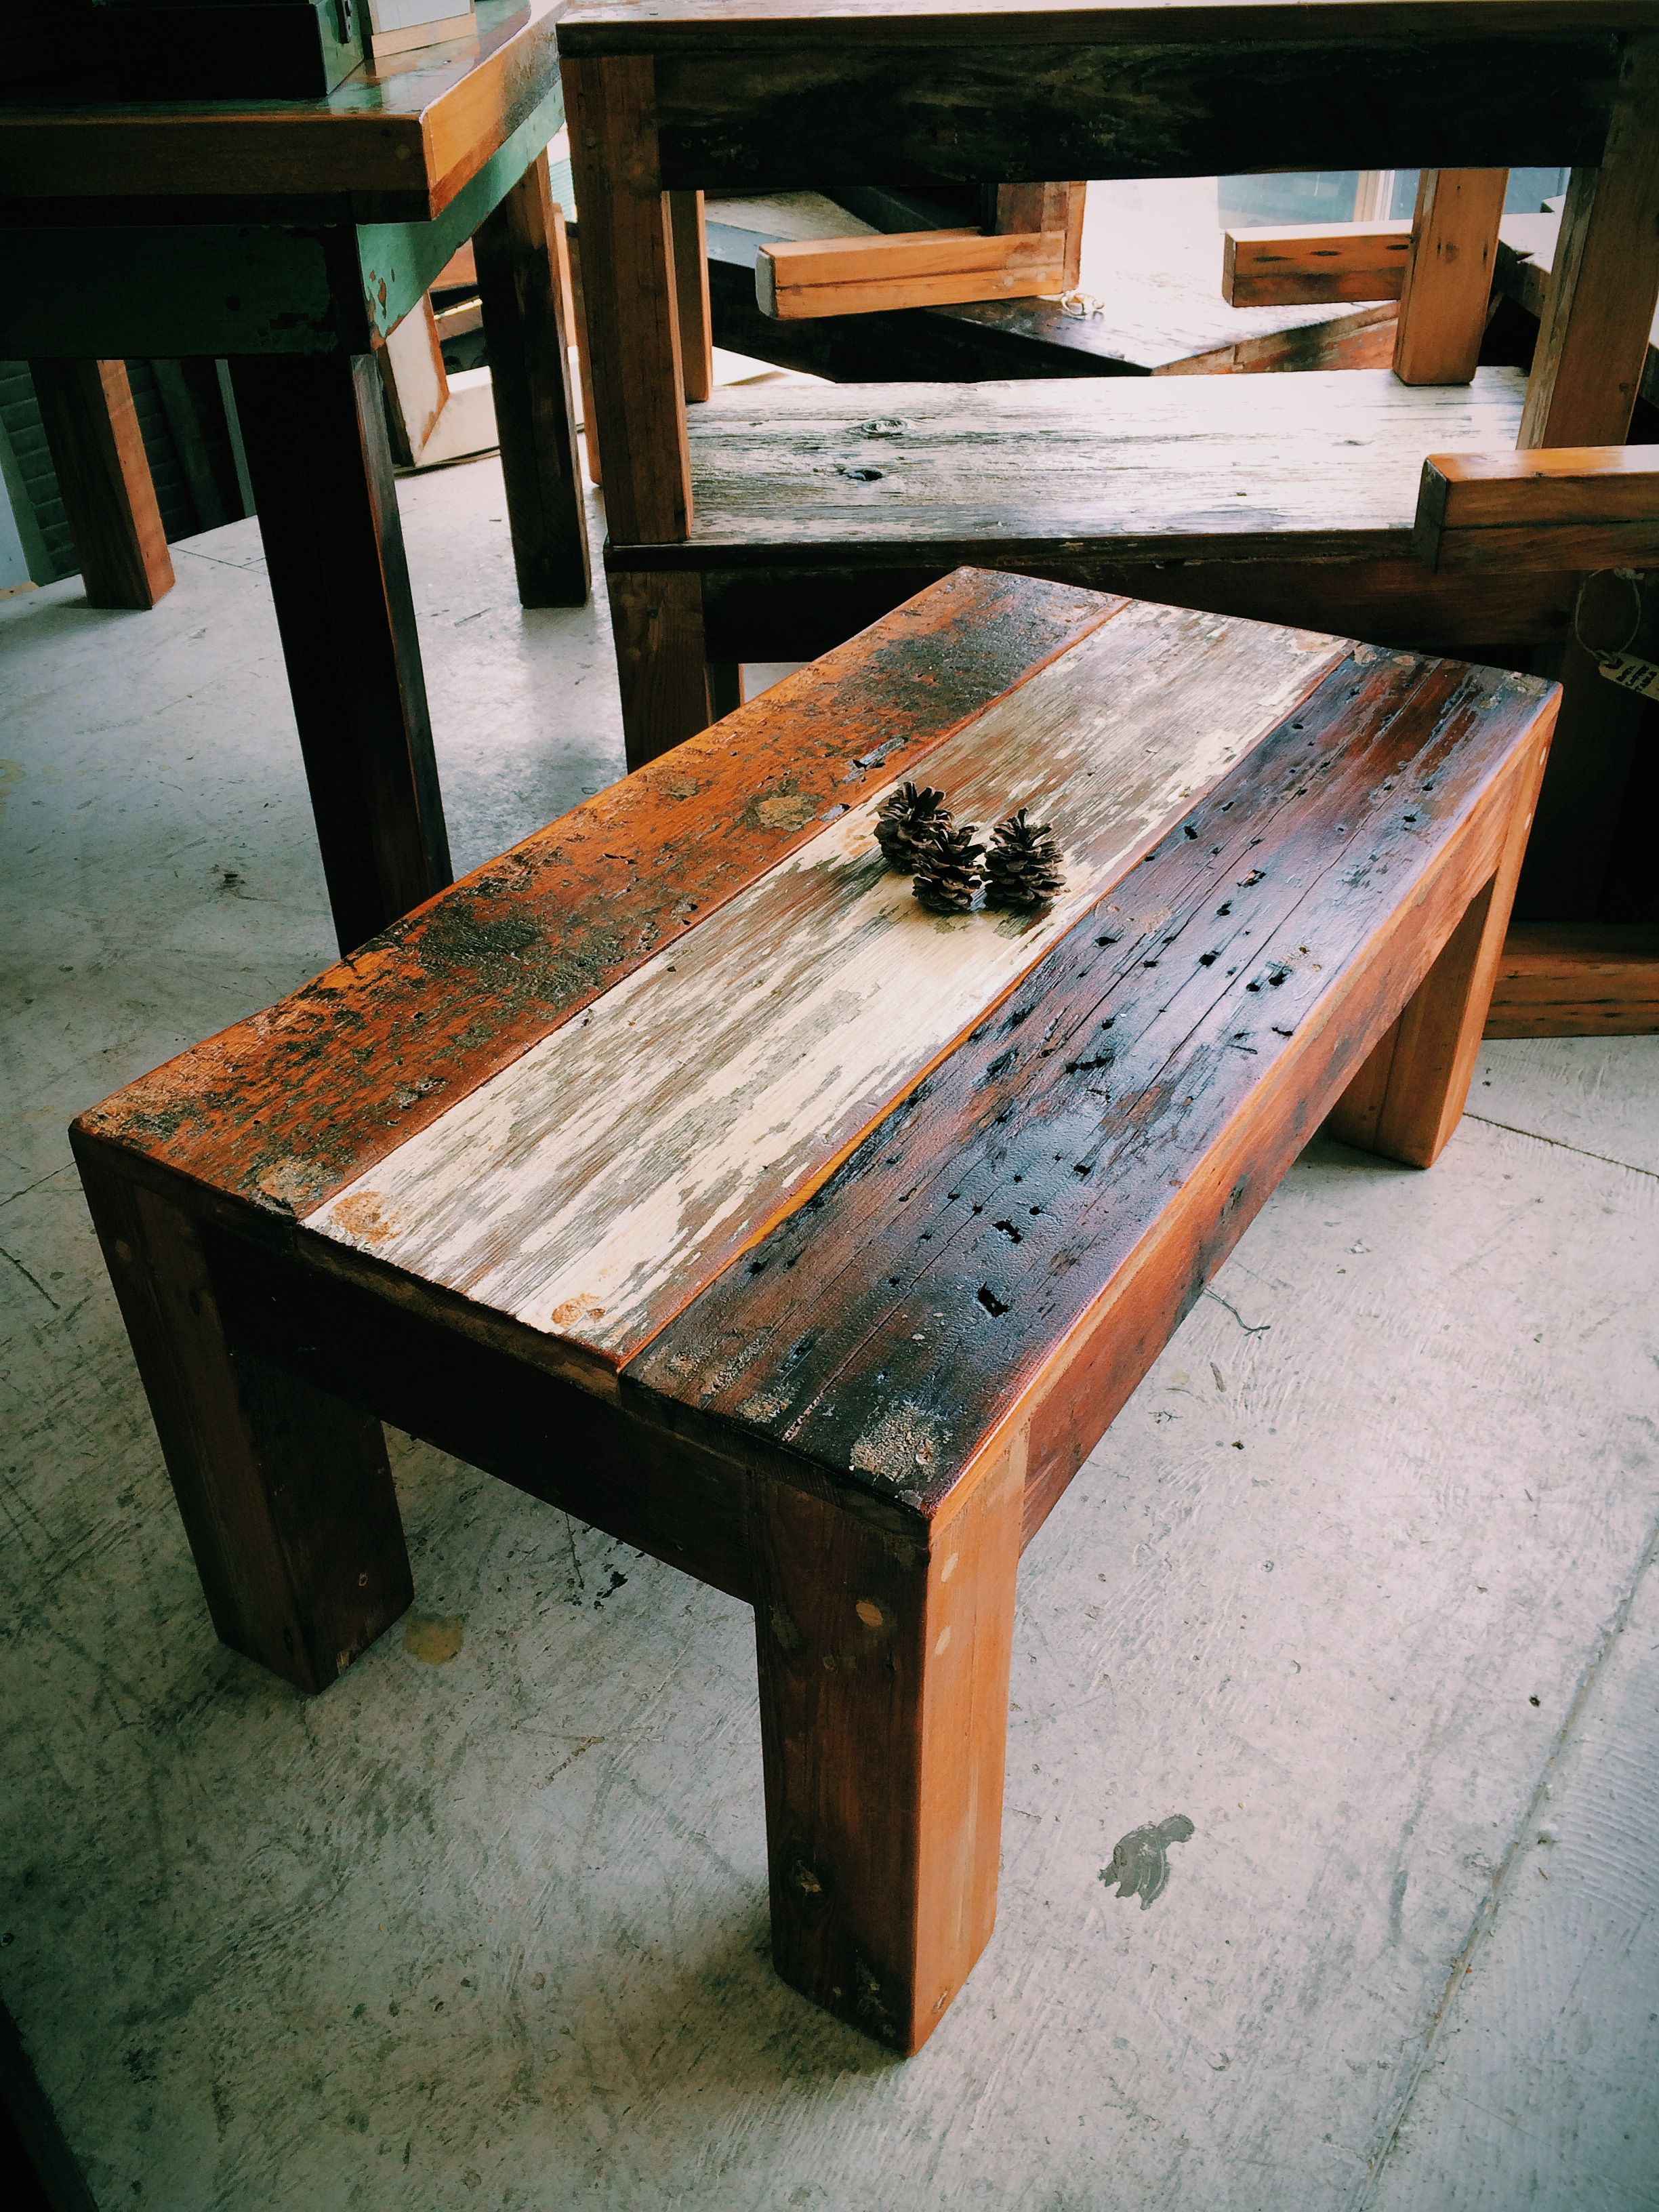 Rustic Reclaimed Wood Coffee Table Made From Old Floor And Barn